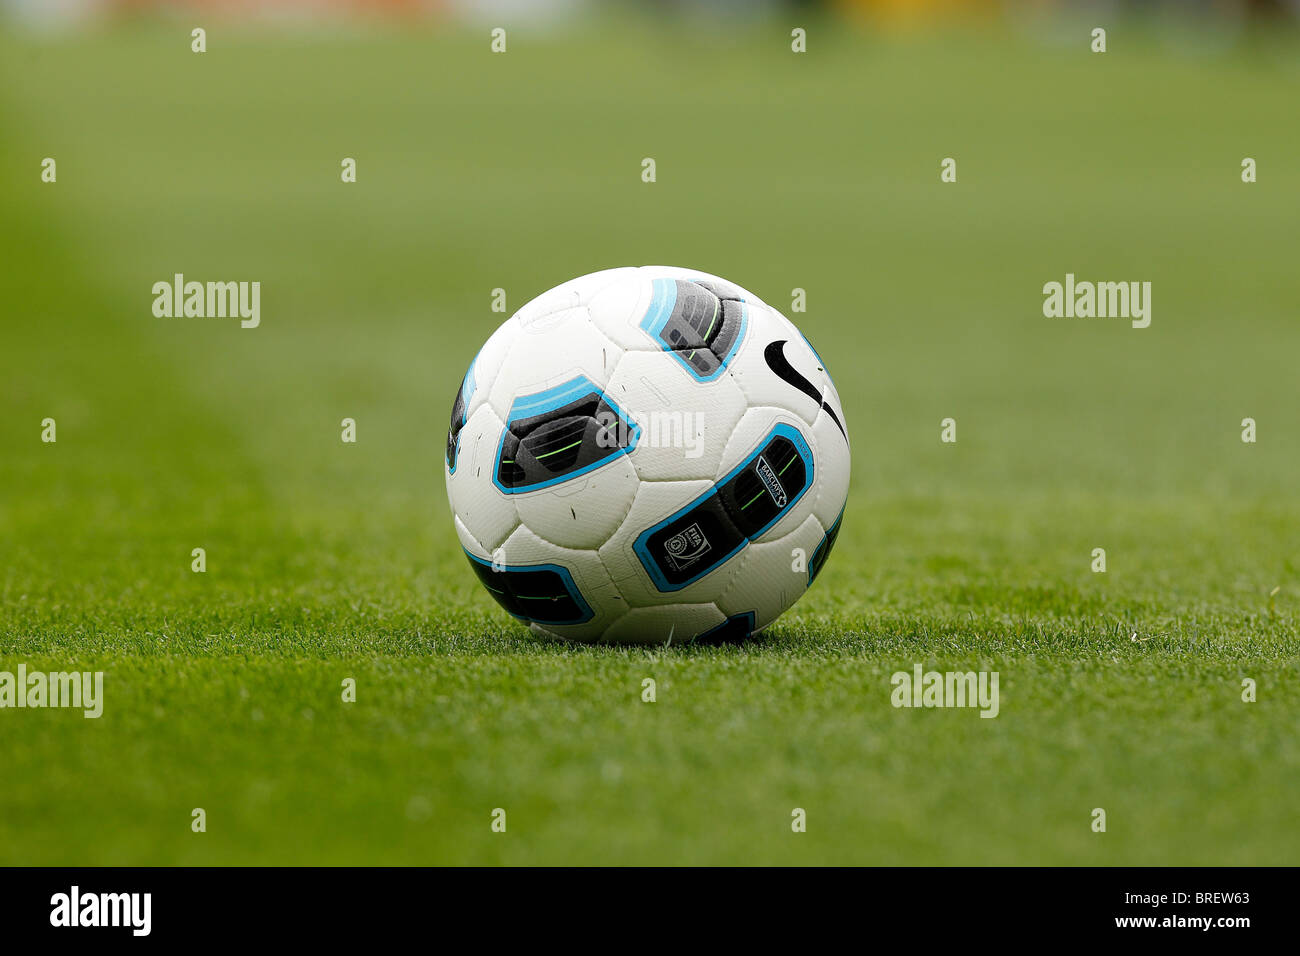 A 2010 Premiership Football - Stock Image